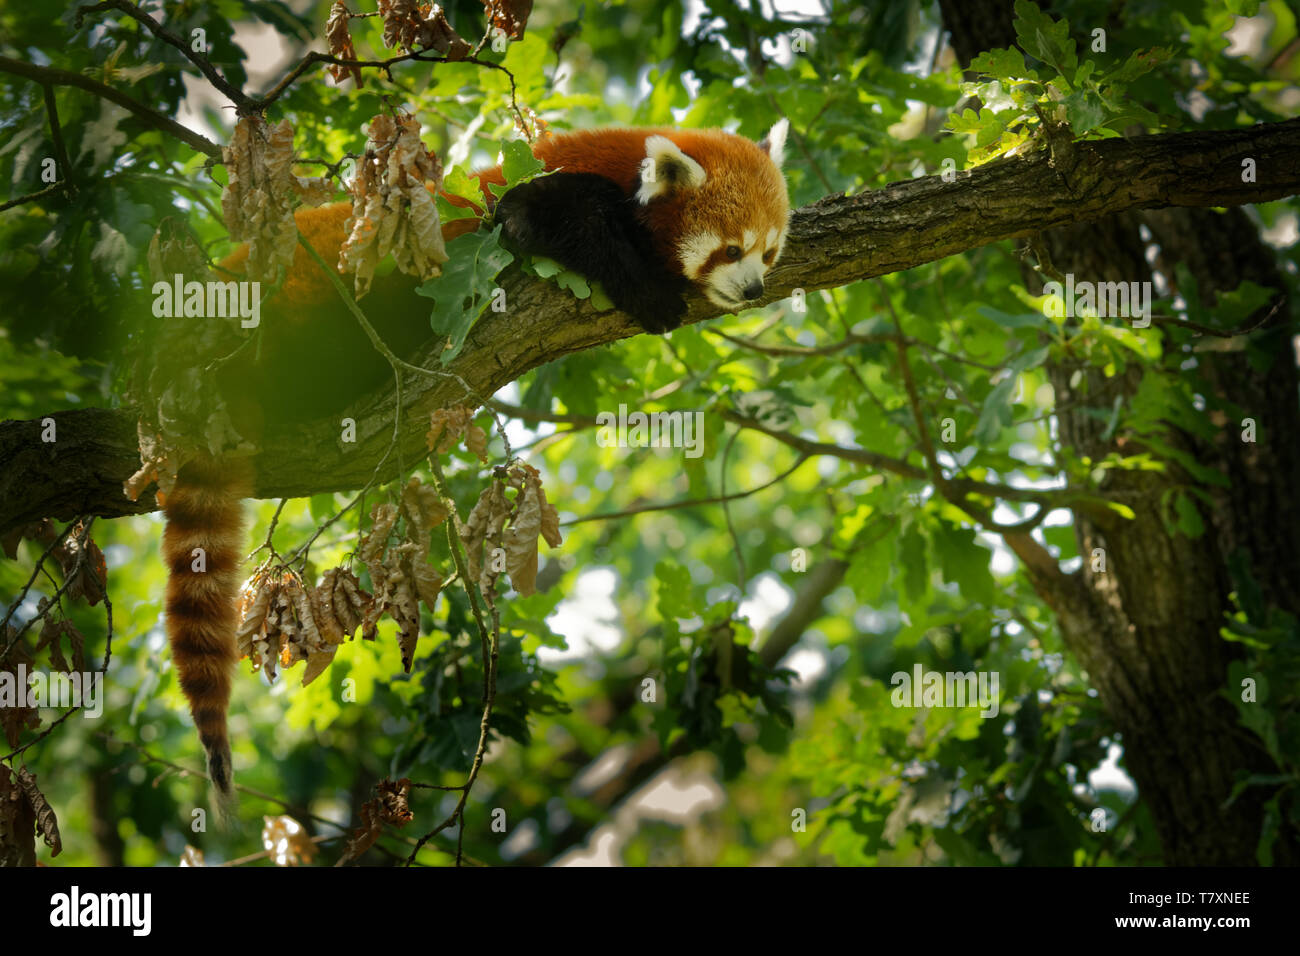 Red Panda - Ailurus fulgens laying on the branch in the forest. - Stock Image